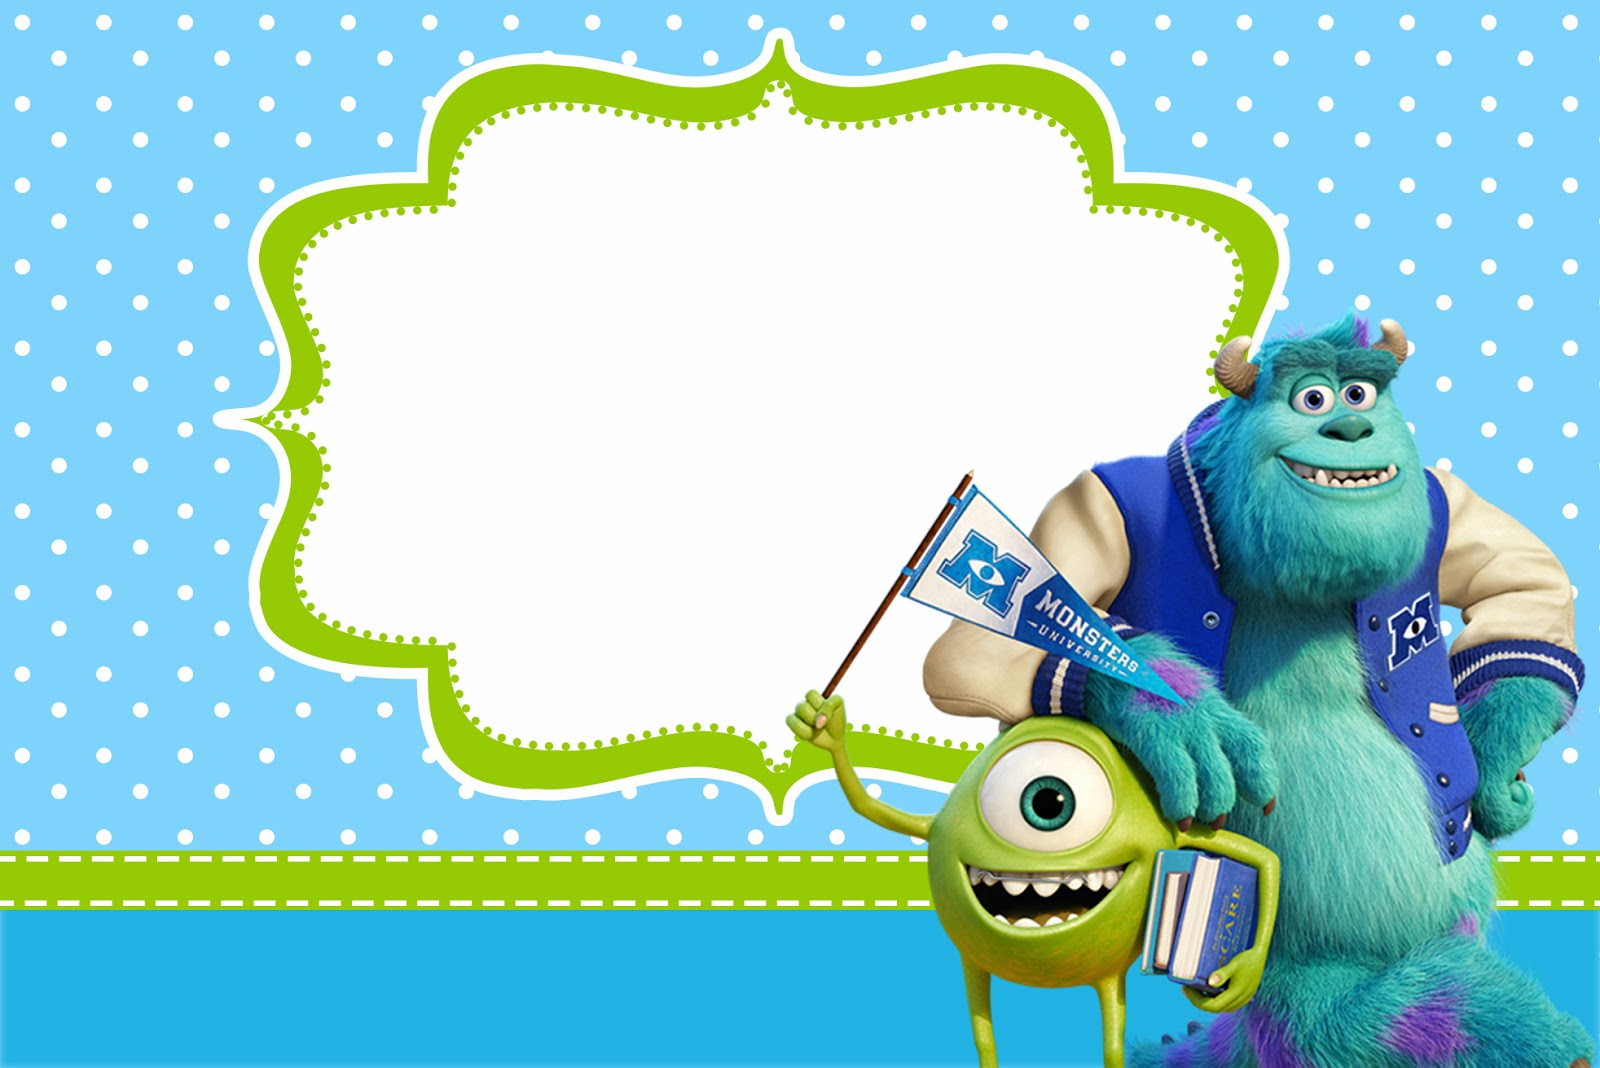 templat monster - monster university free printable party invitations oh